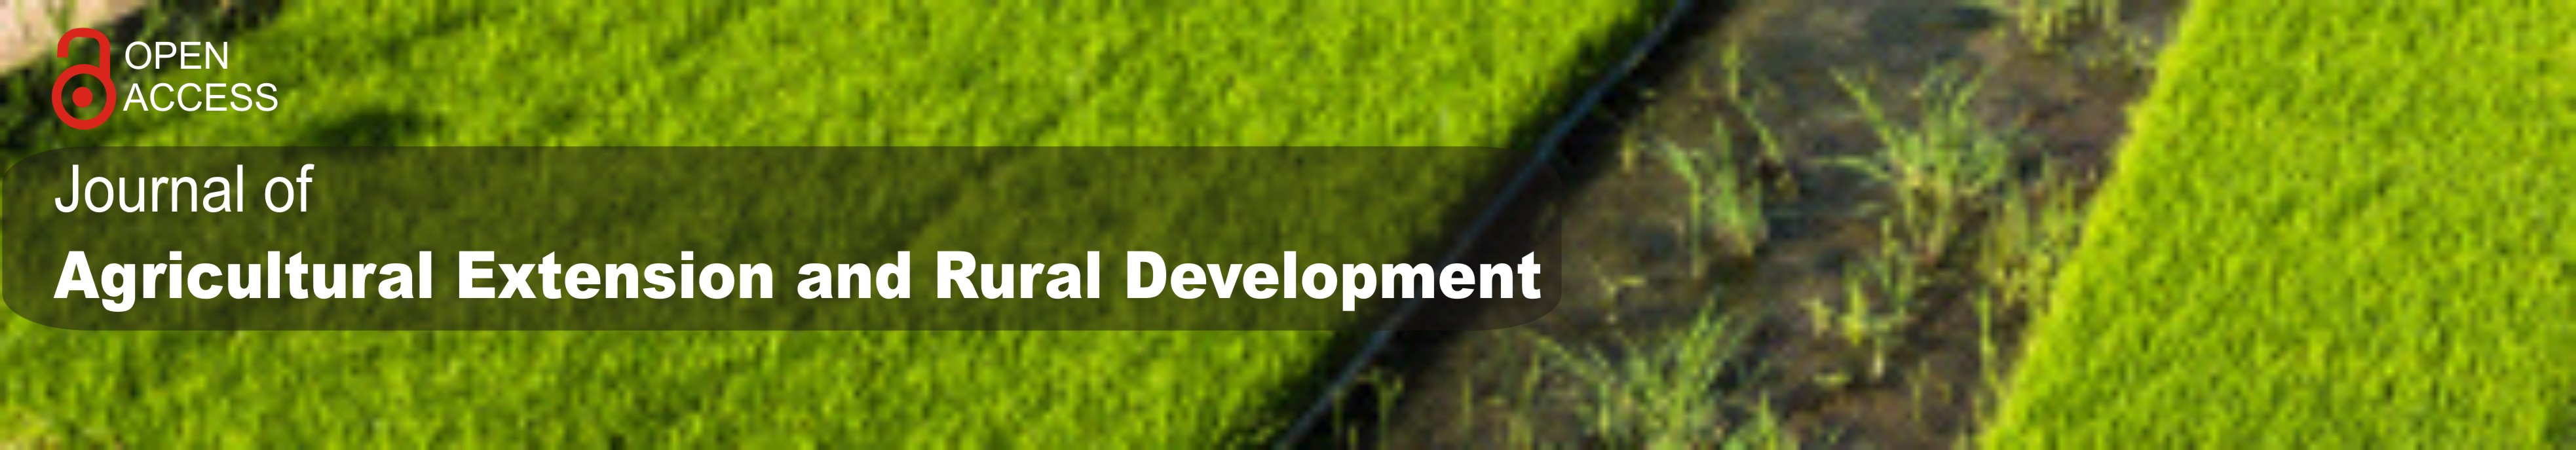 Journal of Agricultural Extension and Rural Development